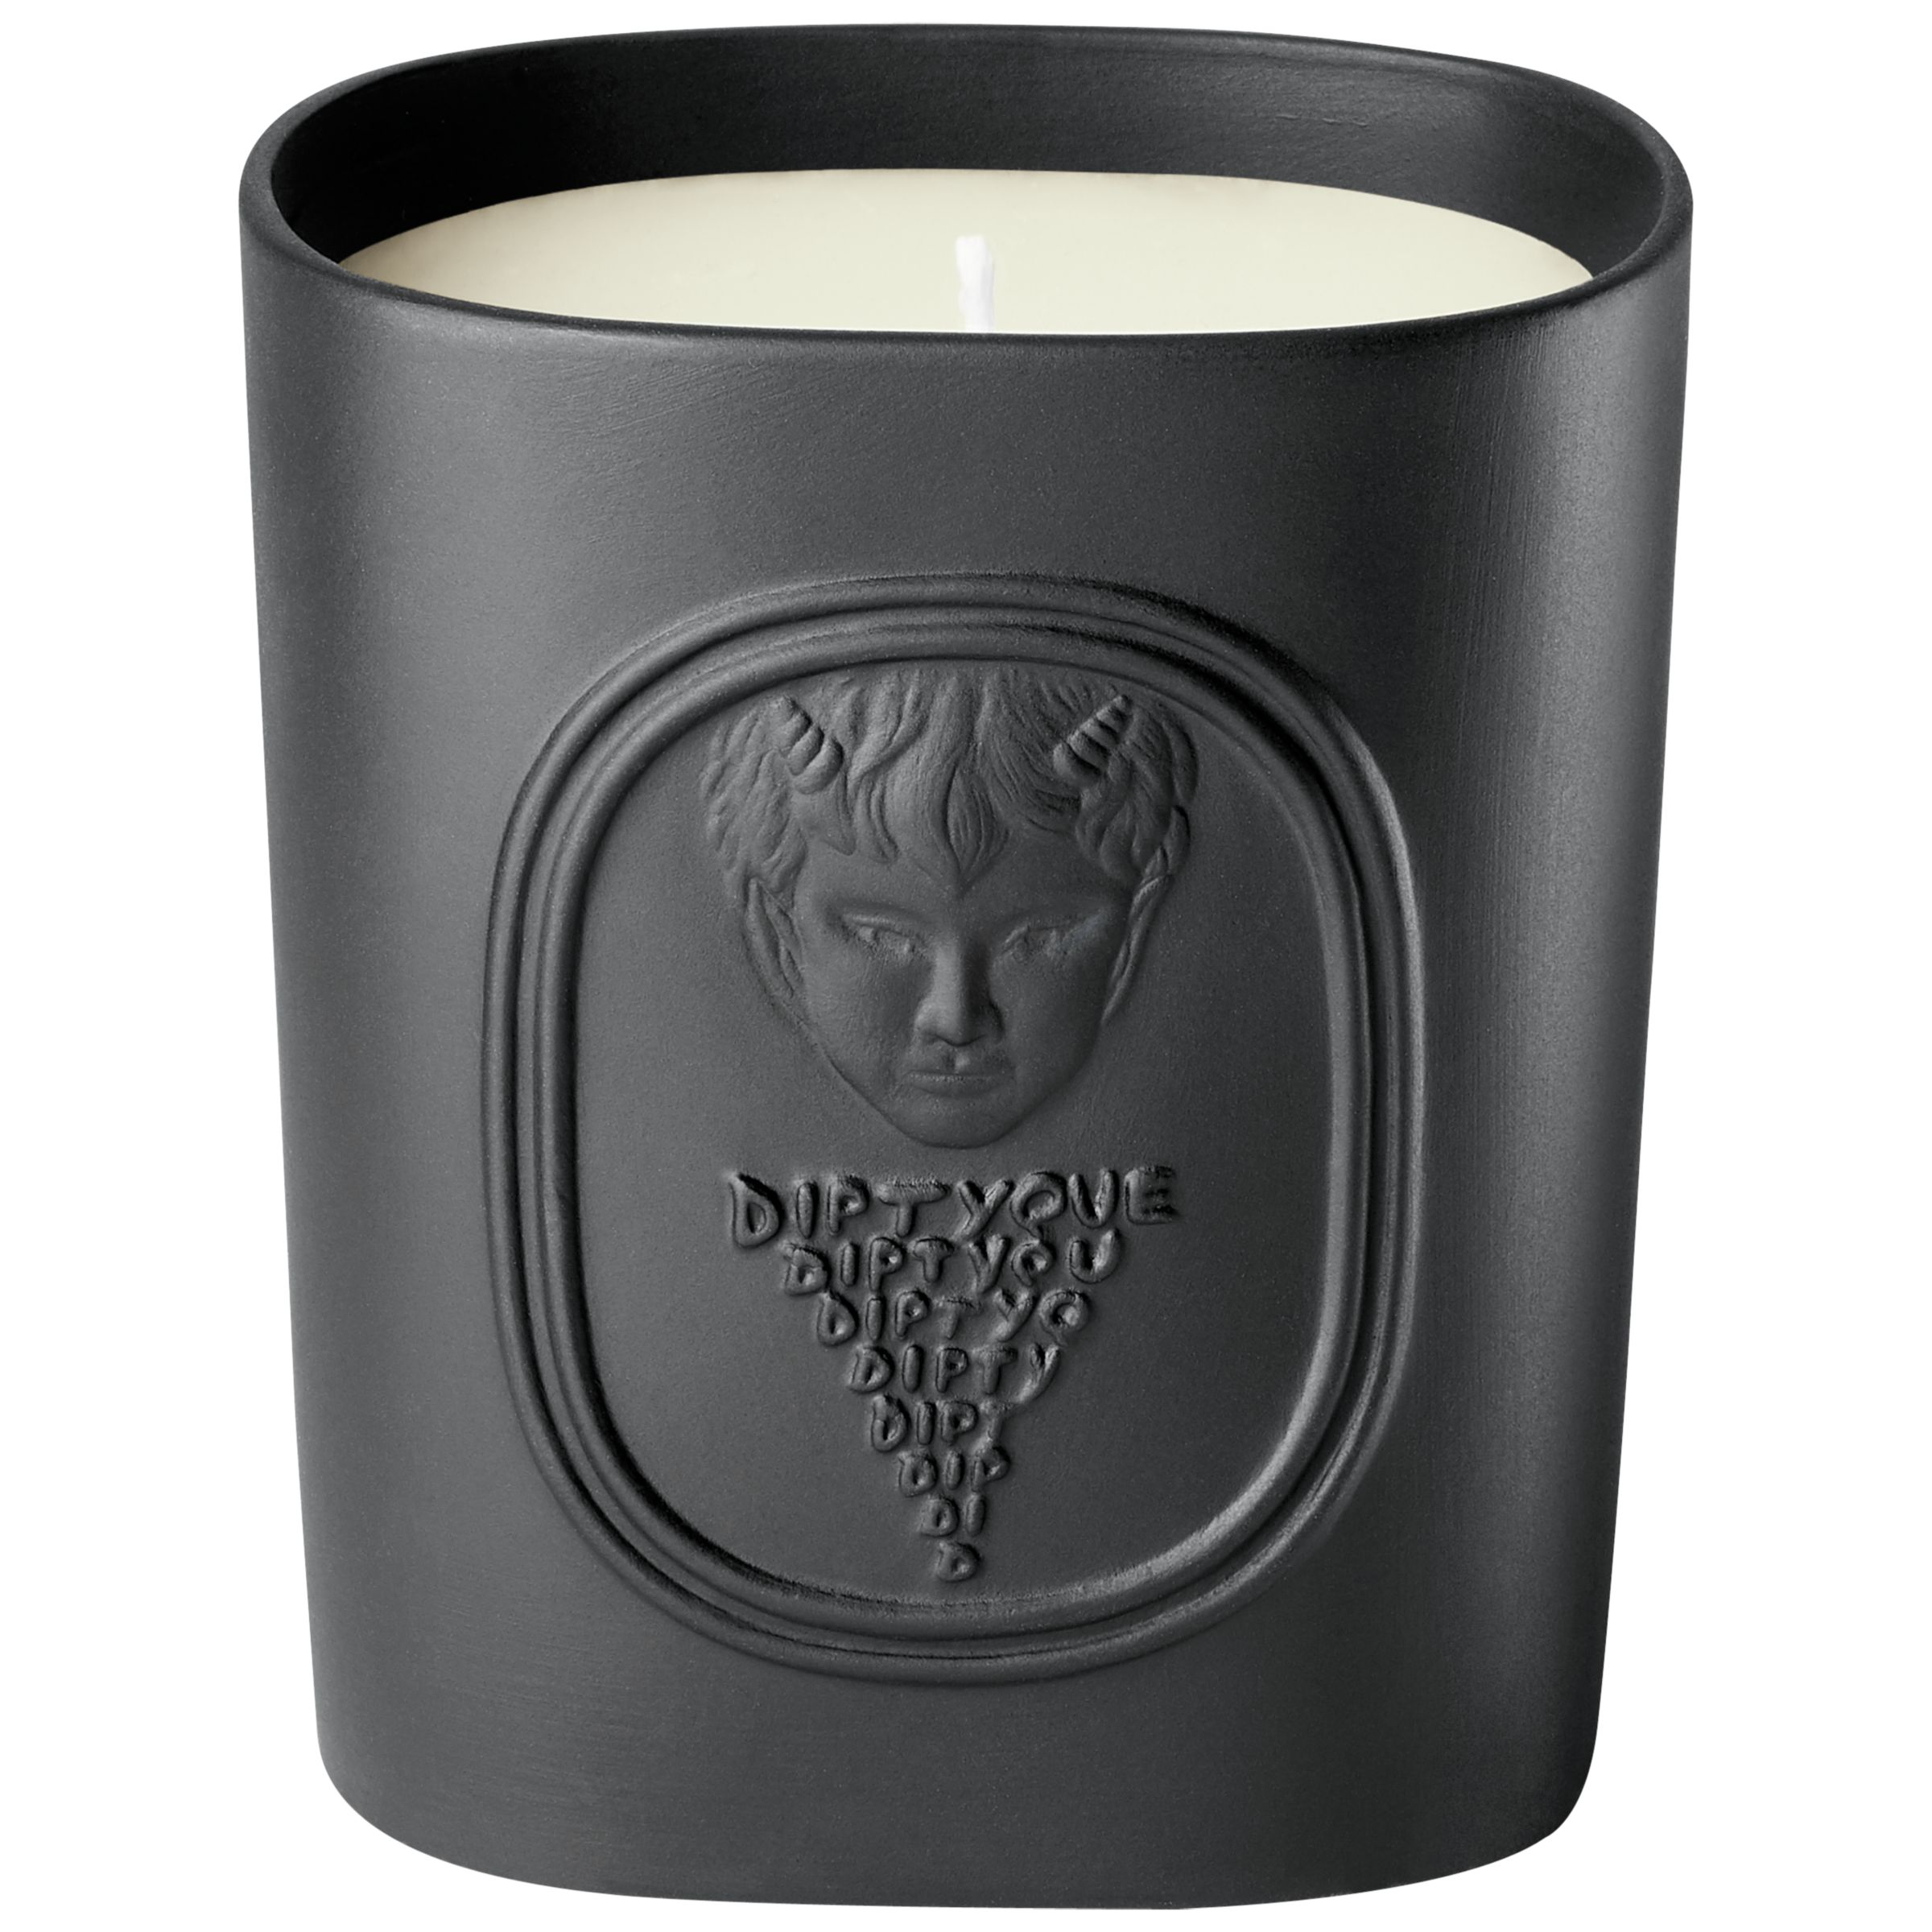 Diptyque Diptyque L'Elide Scented Candle, 220g